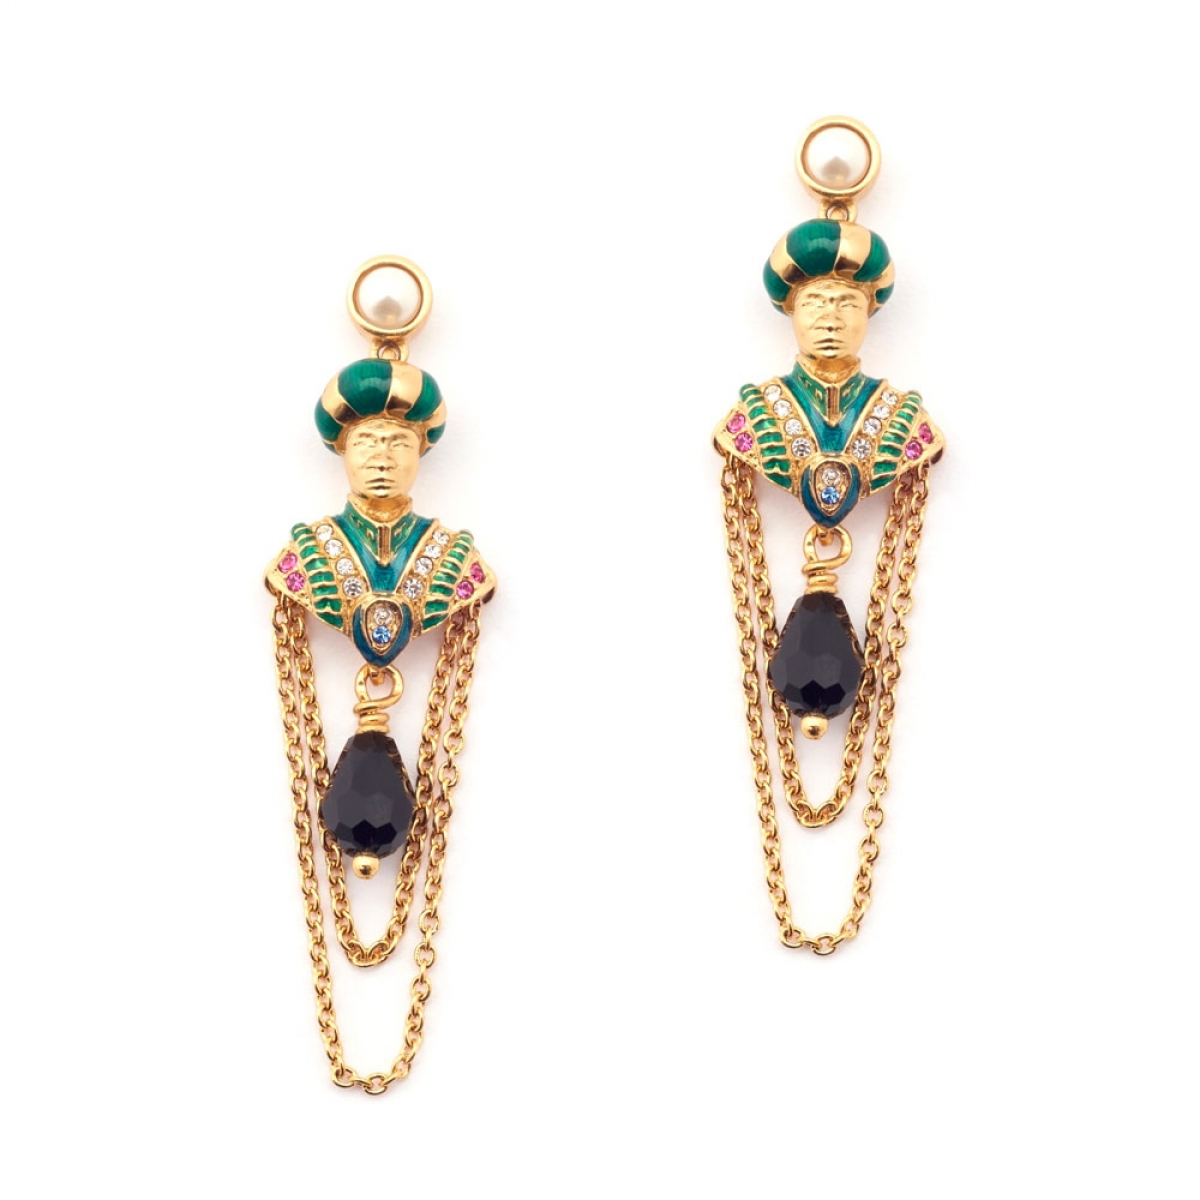 Maharaja Earrings